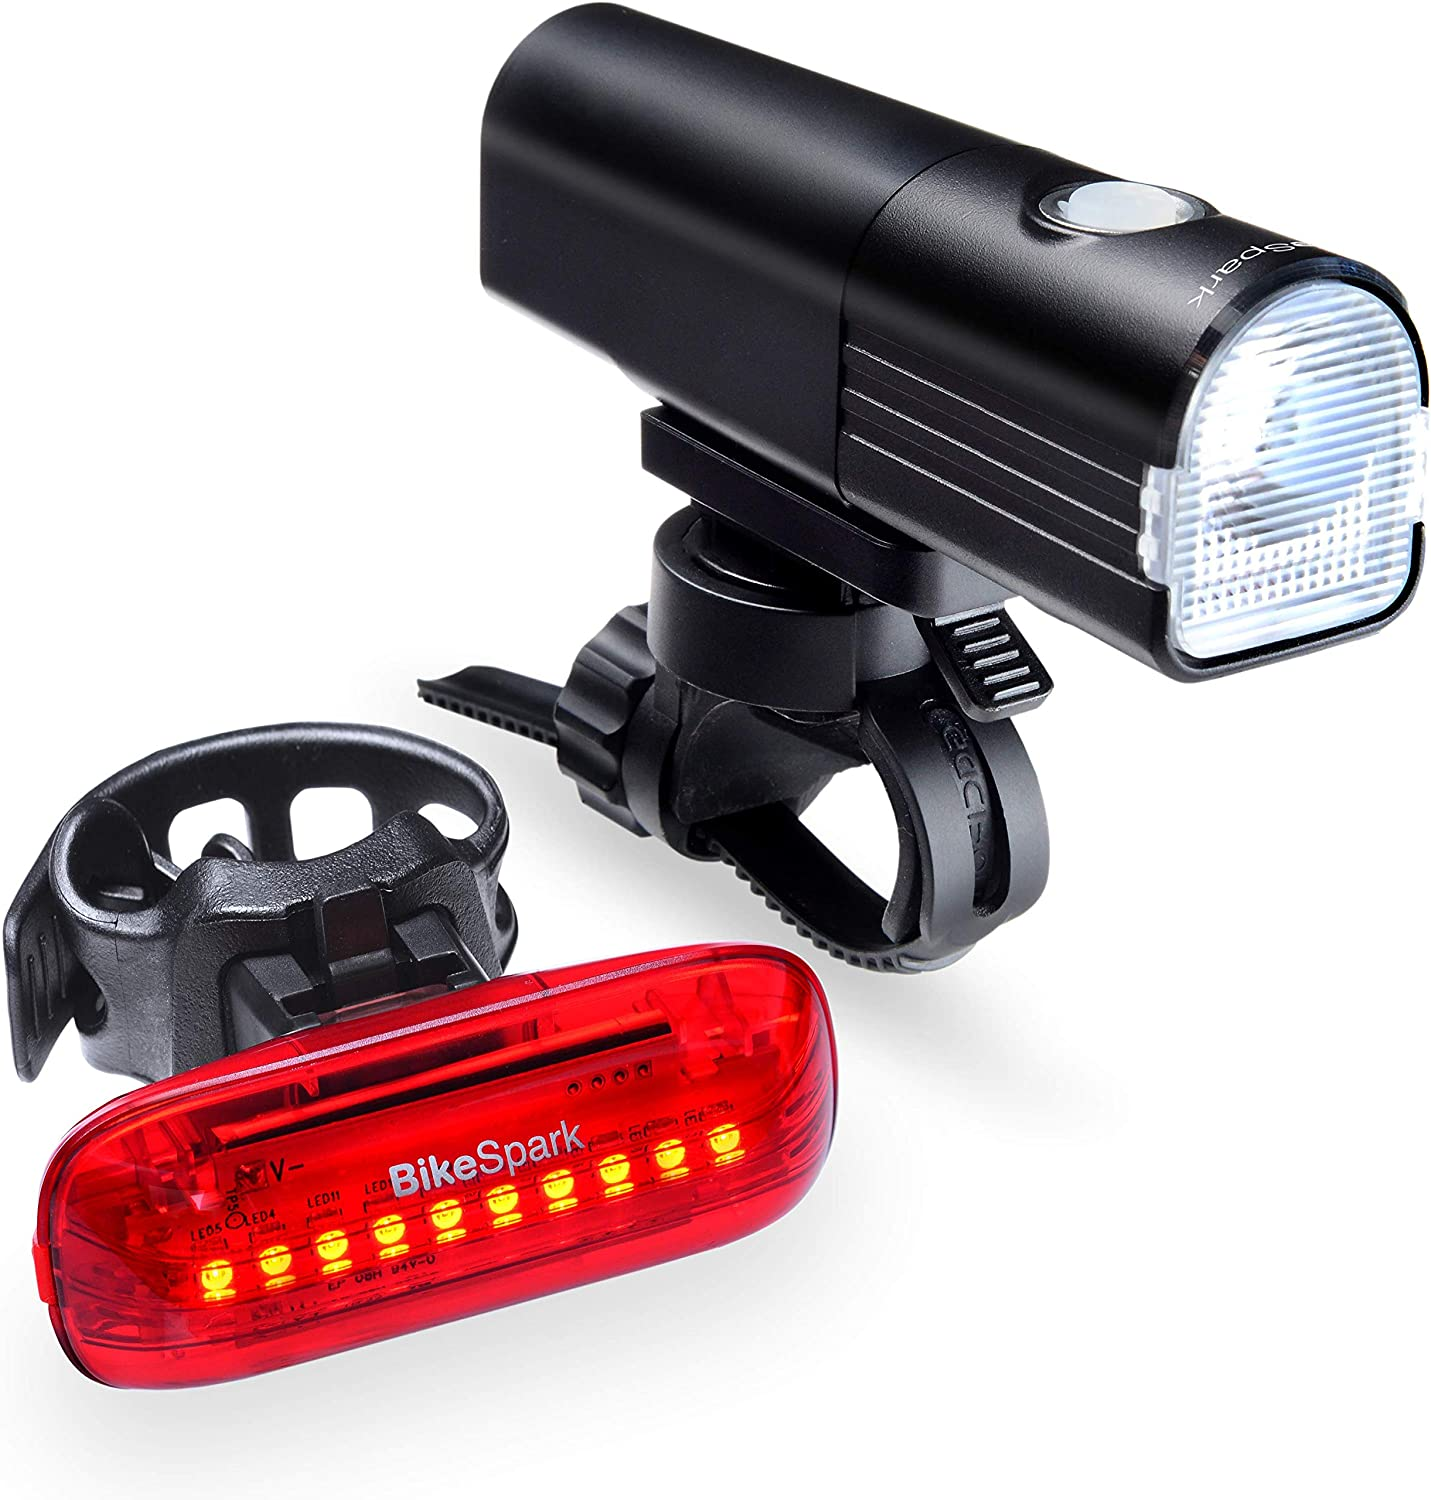 BikeSpark USB Rechargeable Combo Set F3 800lm LG3350mAh Front Light G3 35lm Motion-Sensing Rear Light, Auto On Off Deceleration Flash, IPX5 Strap Mounting for Fast Installation